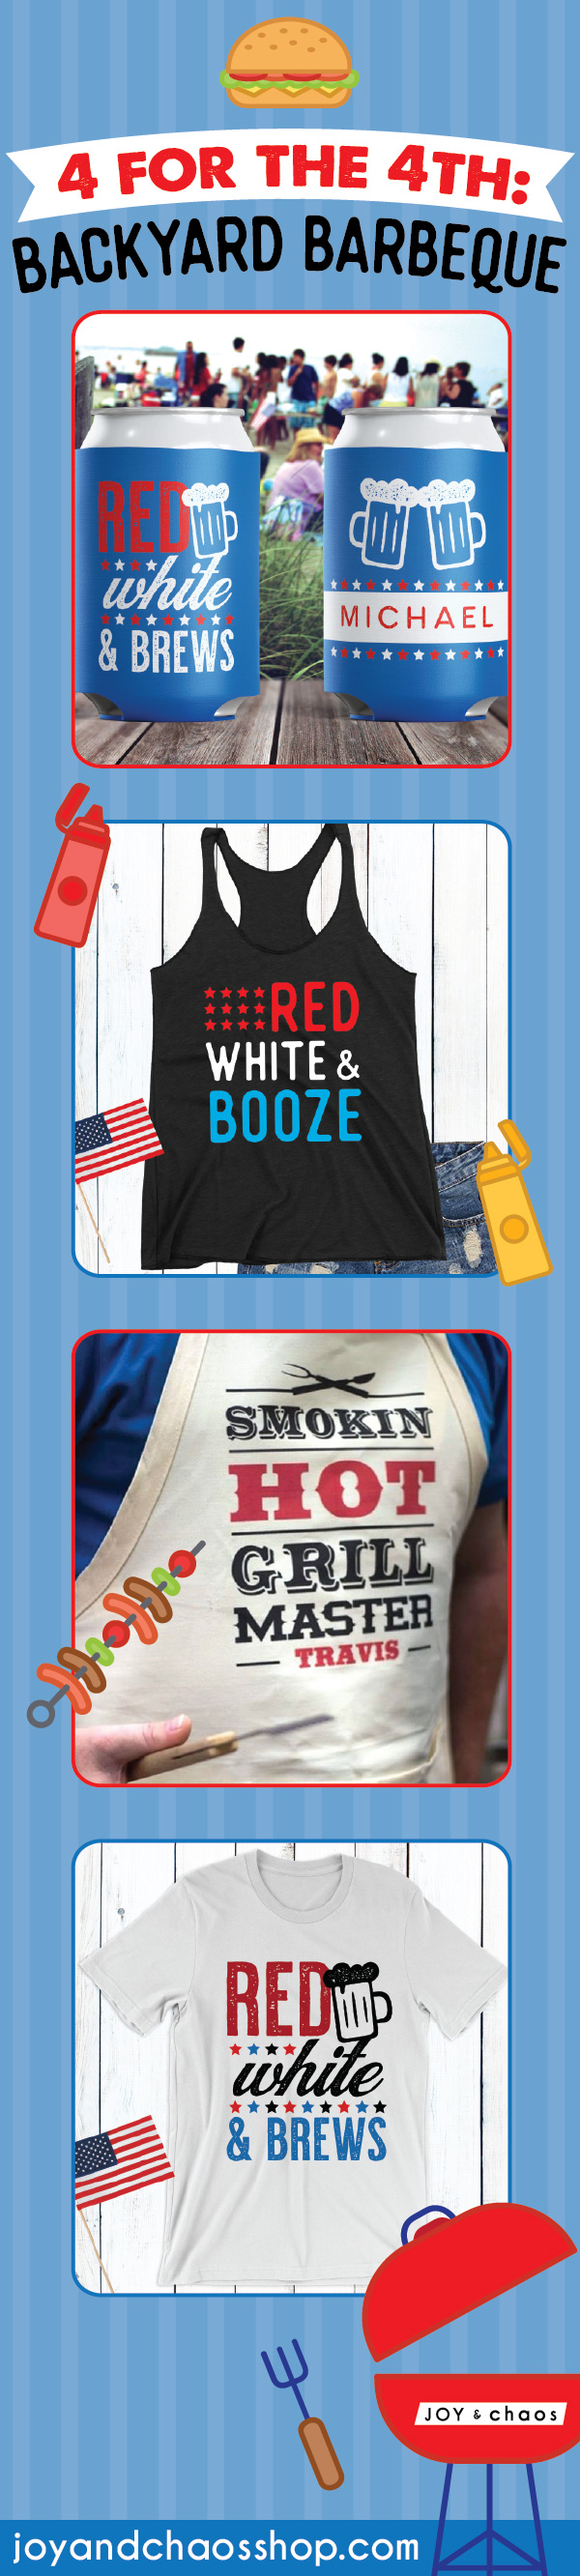 Custom 4th Of July Gifts: Backyard Barbeque Must-Haves